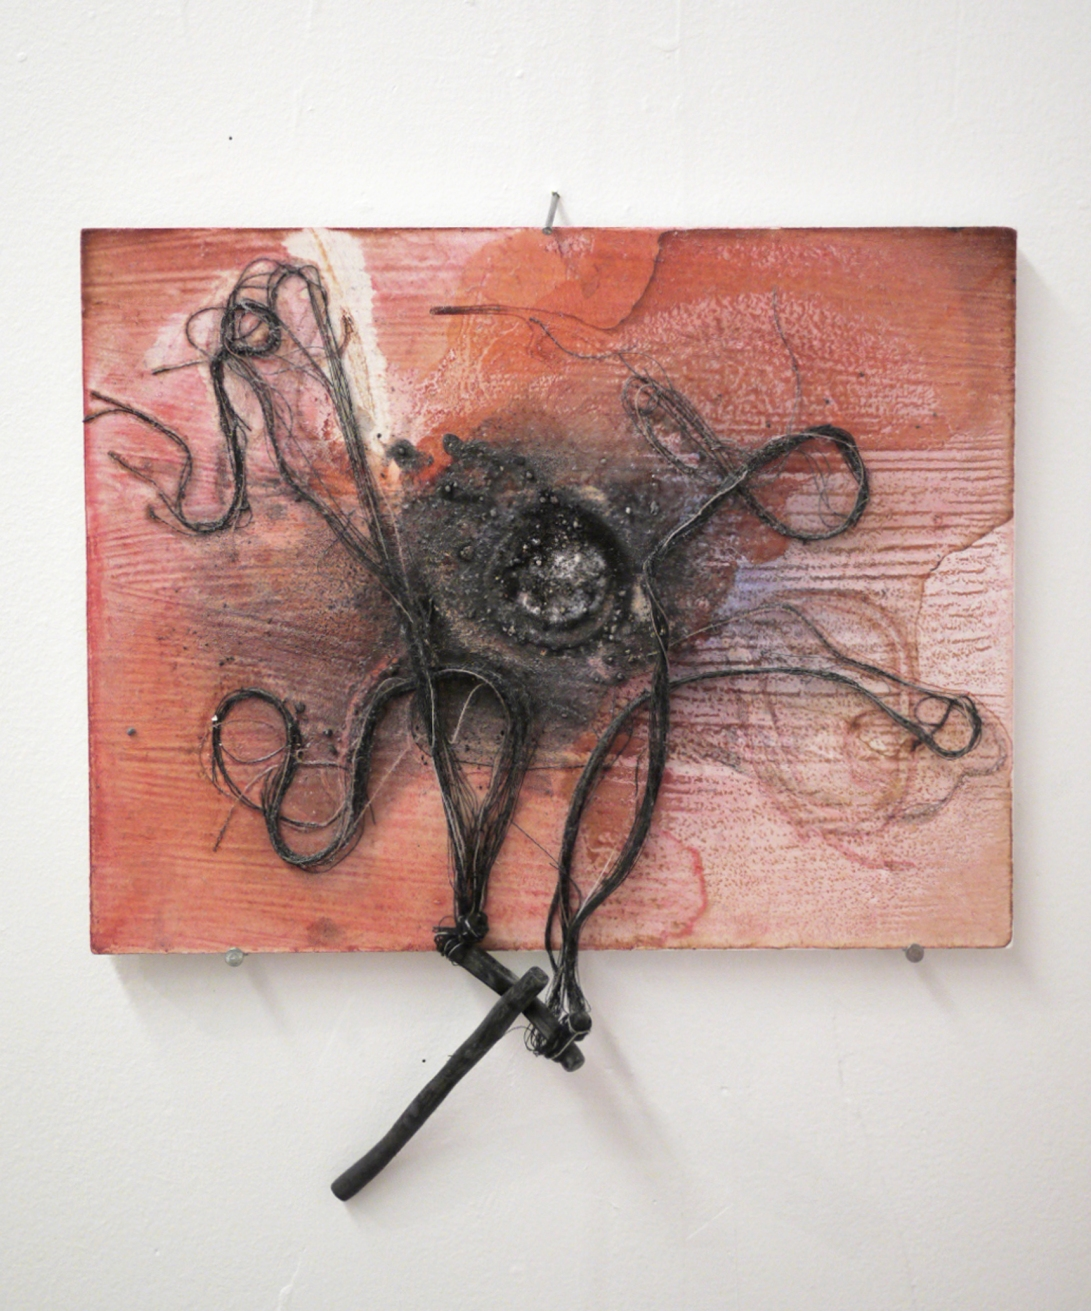 "Uprooted, string, clay, dirt, acrylic on wood, 11"" x 13"""